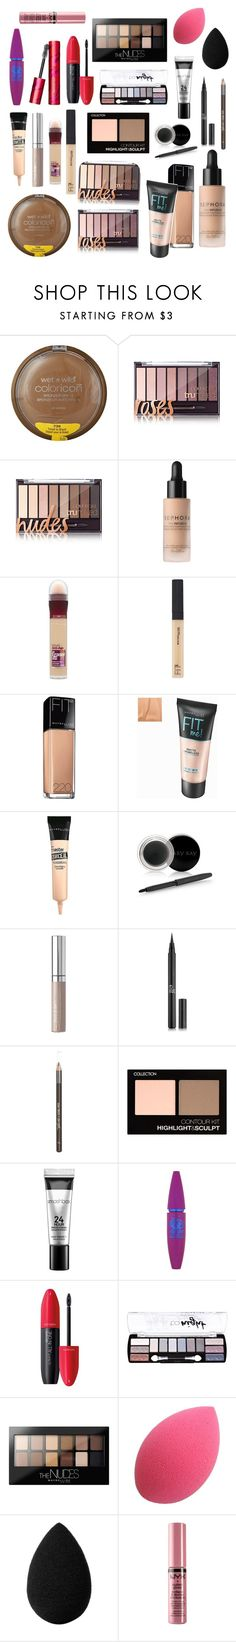 """""""My Makeup Collection"""" by an-internet-girl ❤ liked on Polyvore featuring beauty, Wet n Wild, Sephora Collection, Maybelline, Mary Kay, COVERGIRL, Lipsy, Smashbox, Too Faced Cosmetics and Revlon"""